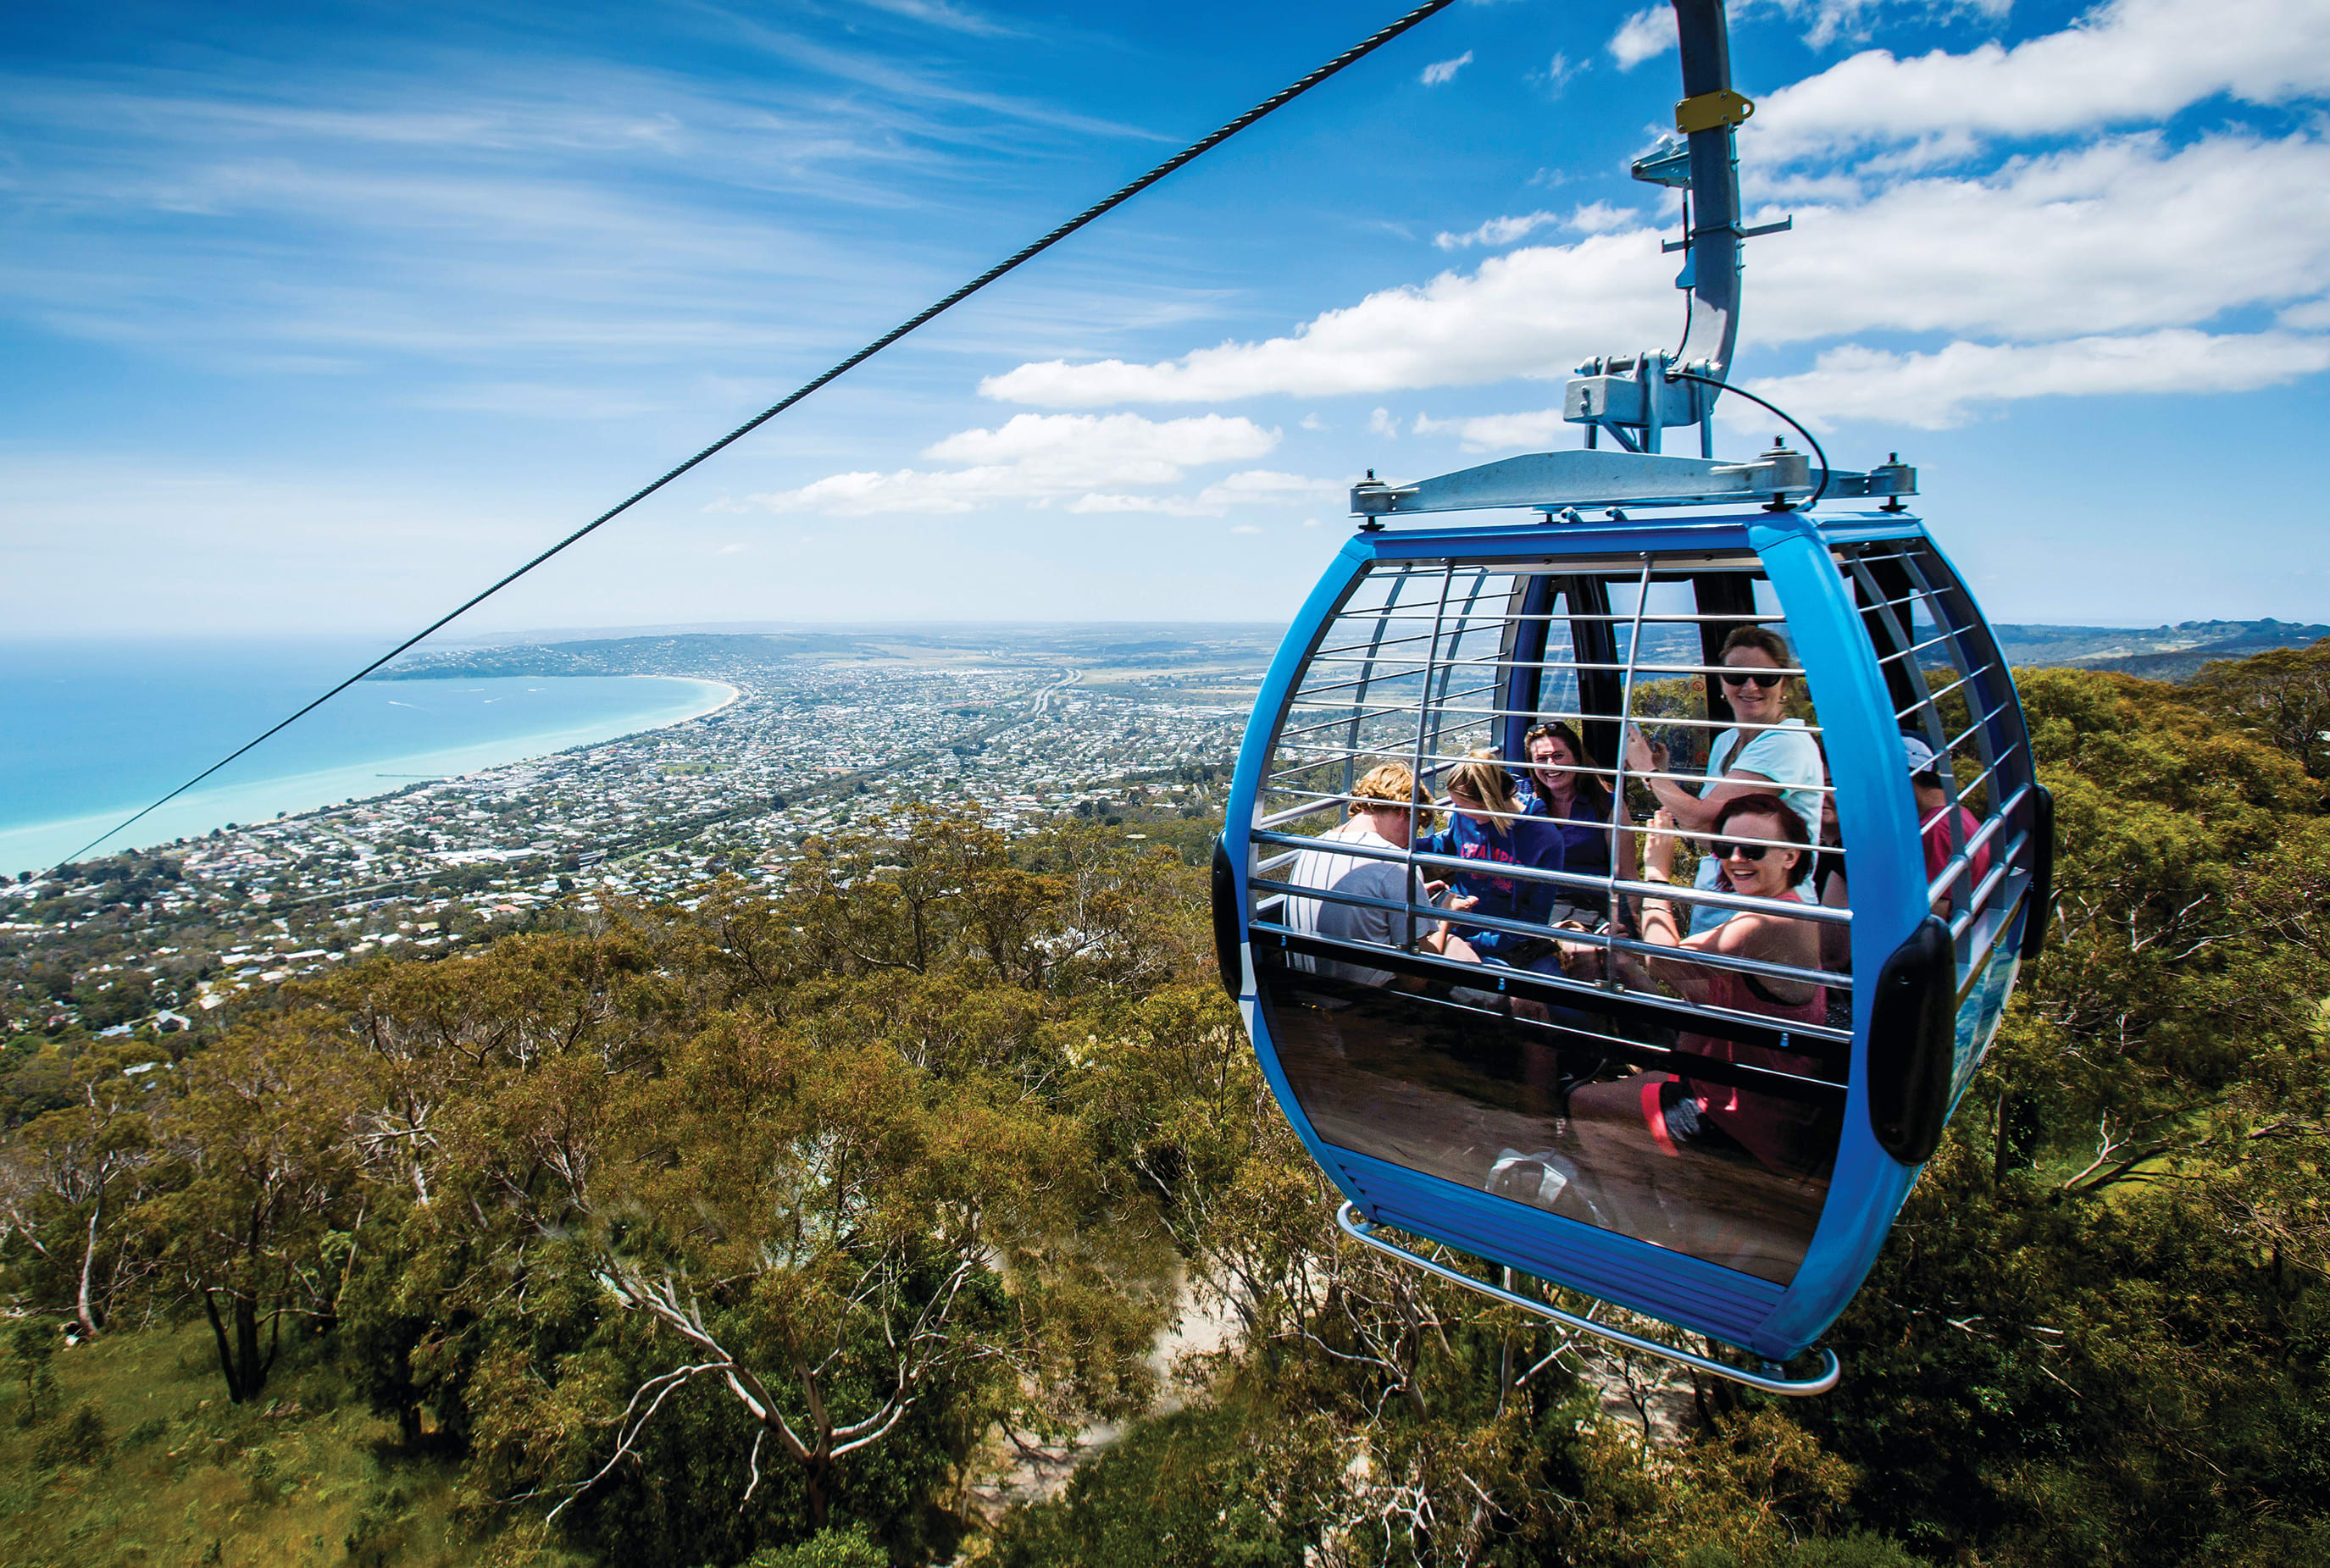 Arthurs Seat Eagle Cable Car Ride and Farmer's Lunch - For 2